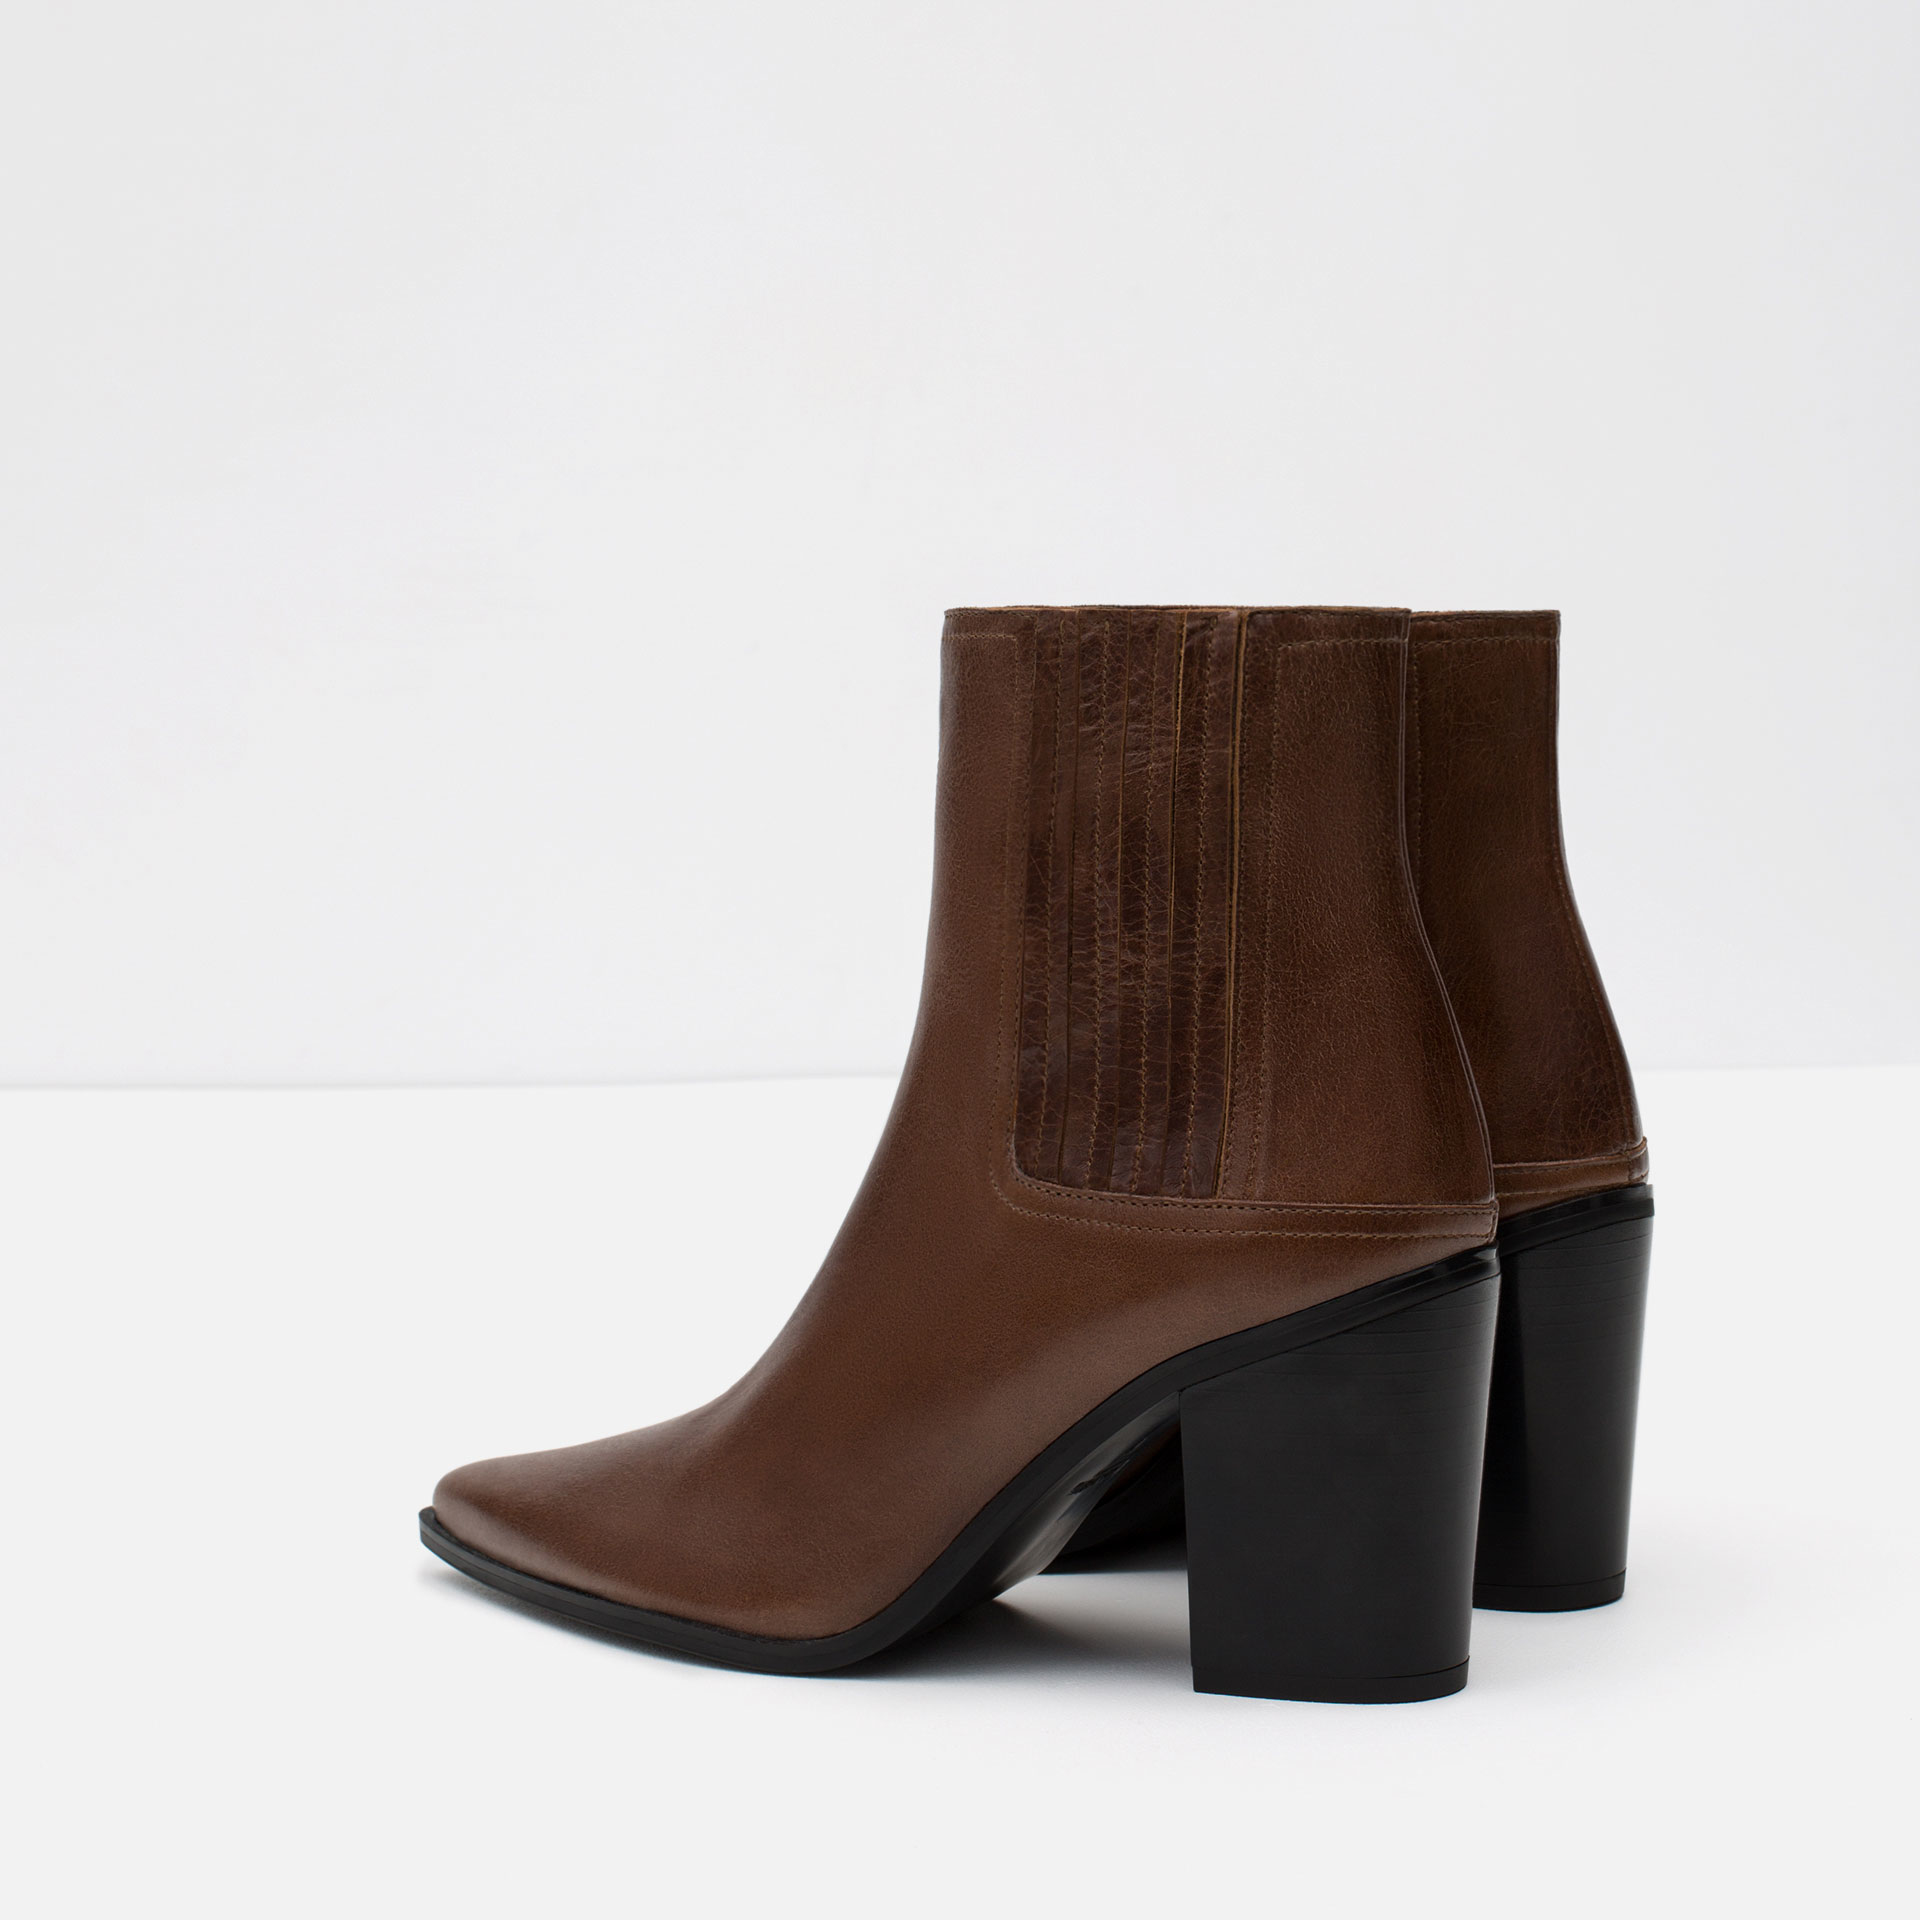 zara high heel leather ankle boots with stretch detail in